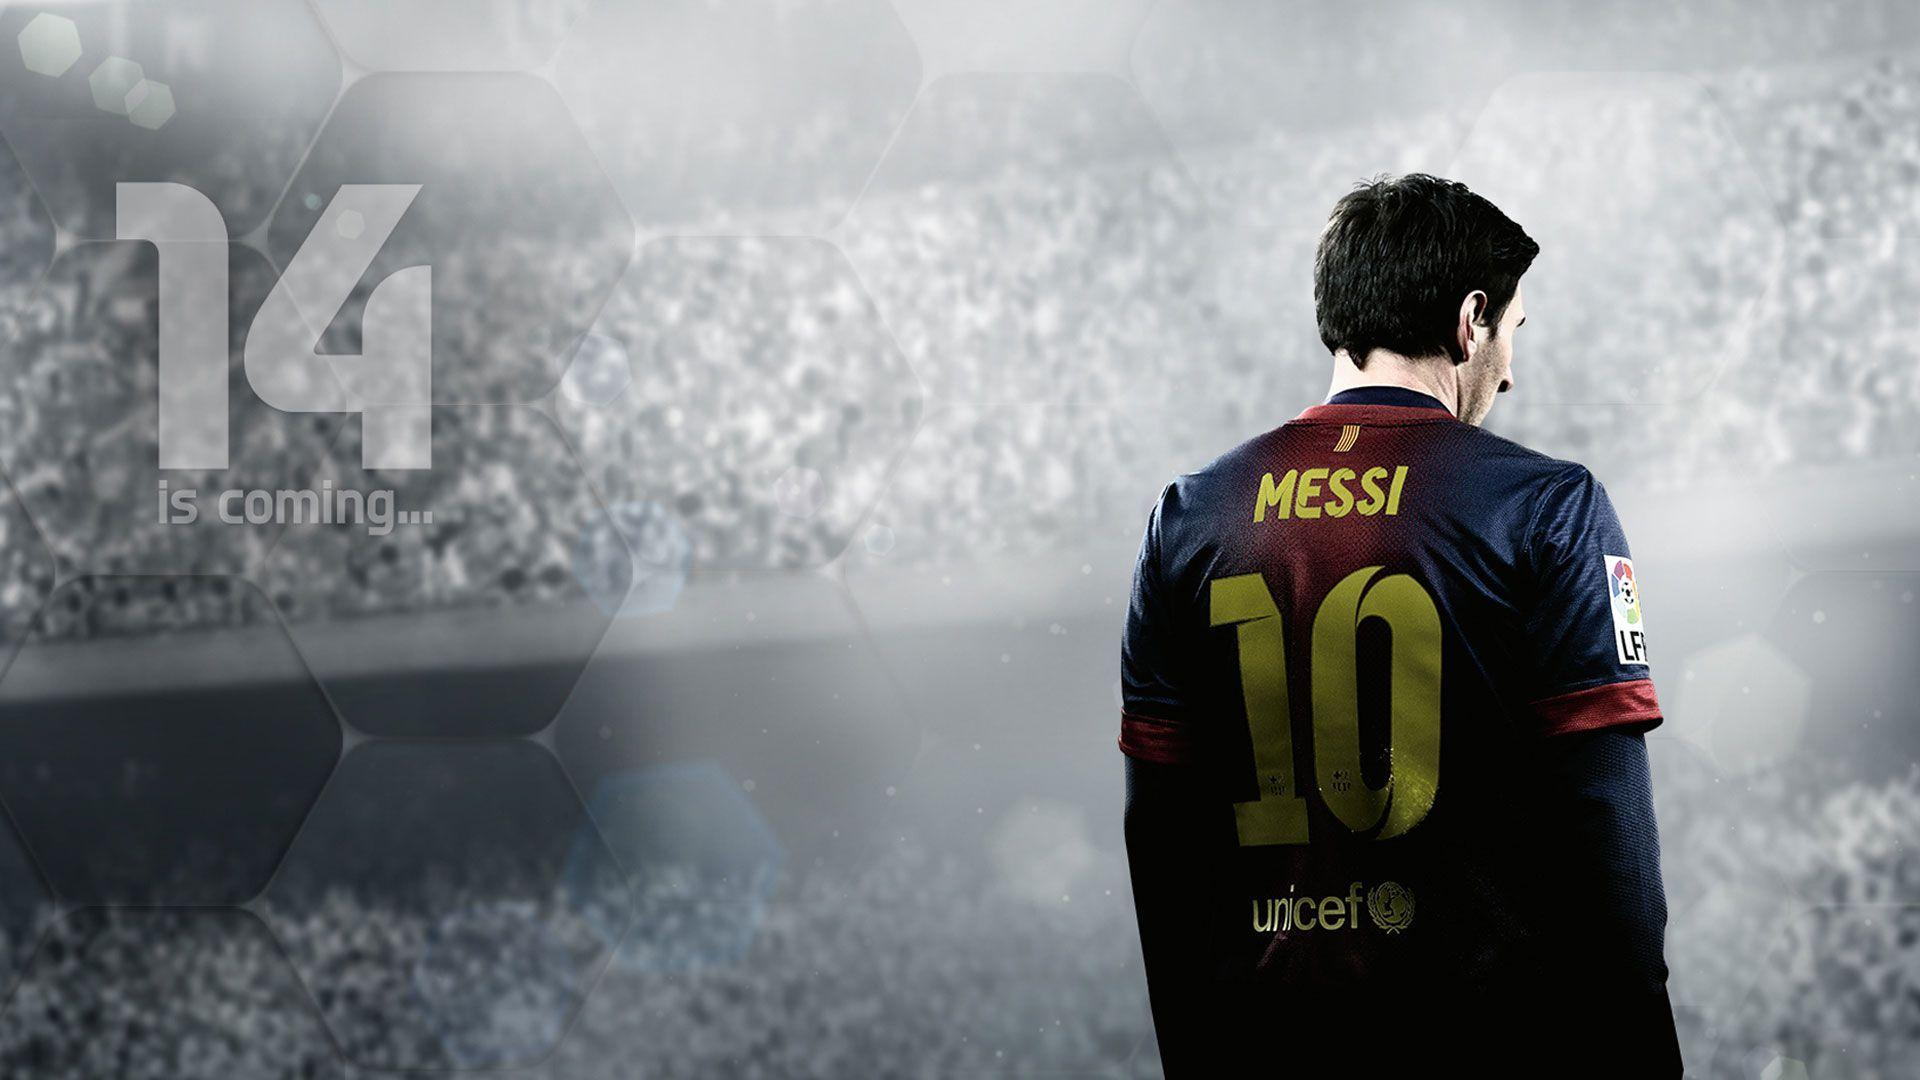 FIFA 14 Wallpapers in HD